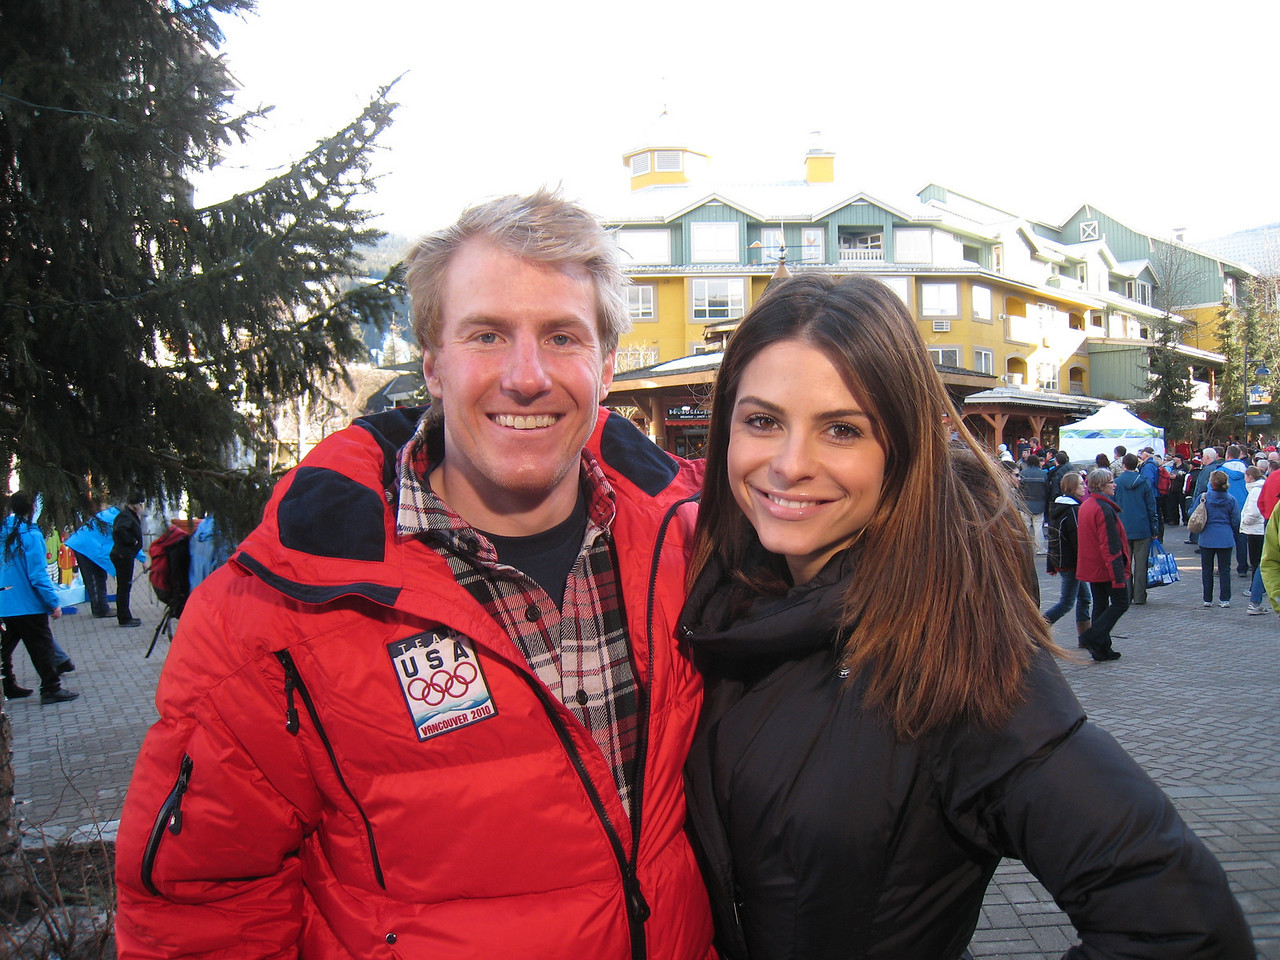 Ted Ligety and Maria Menounos of NBC's Access Holleywood in Whistler Village (Doug Haney/U.S. Ski Team)